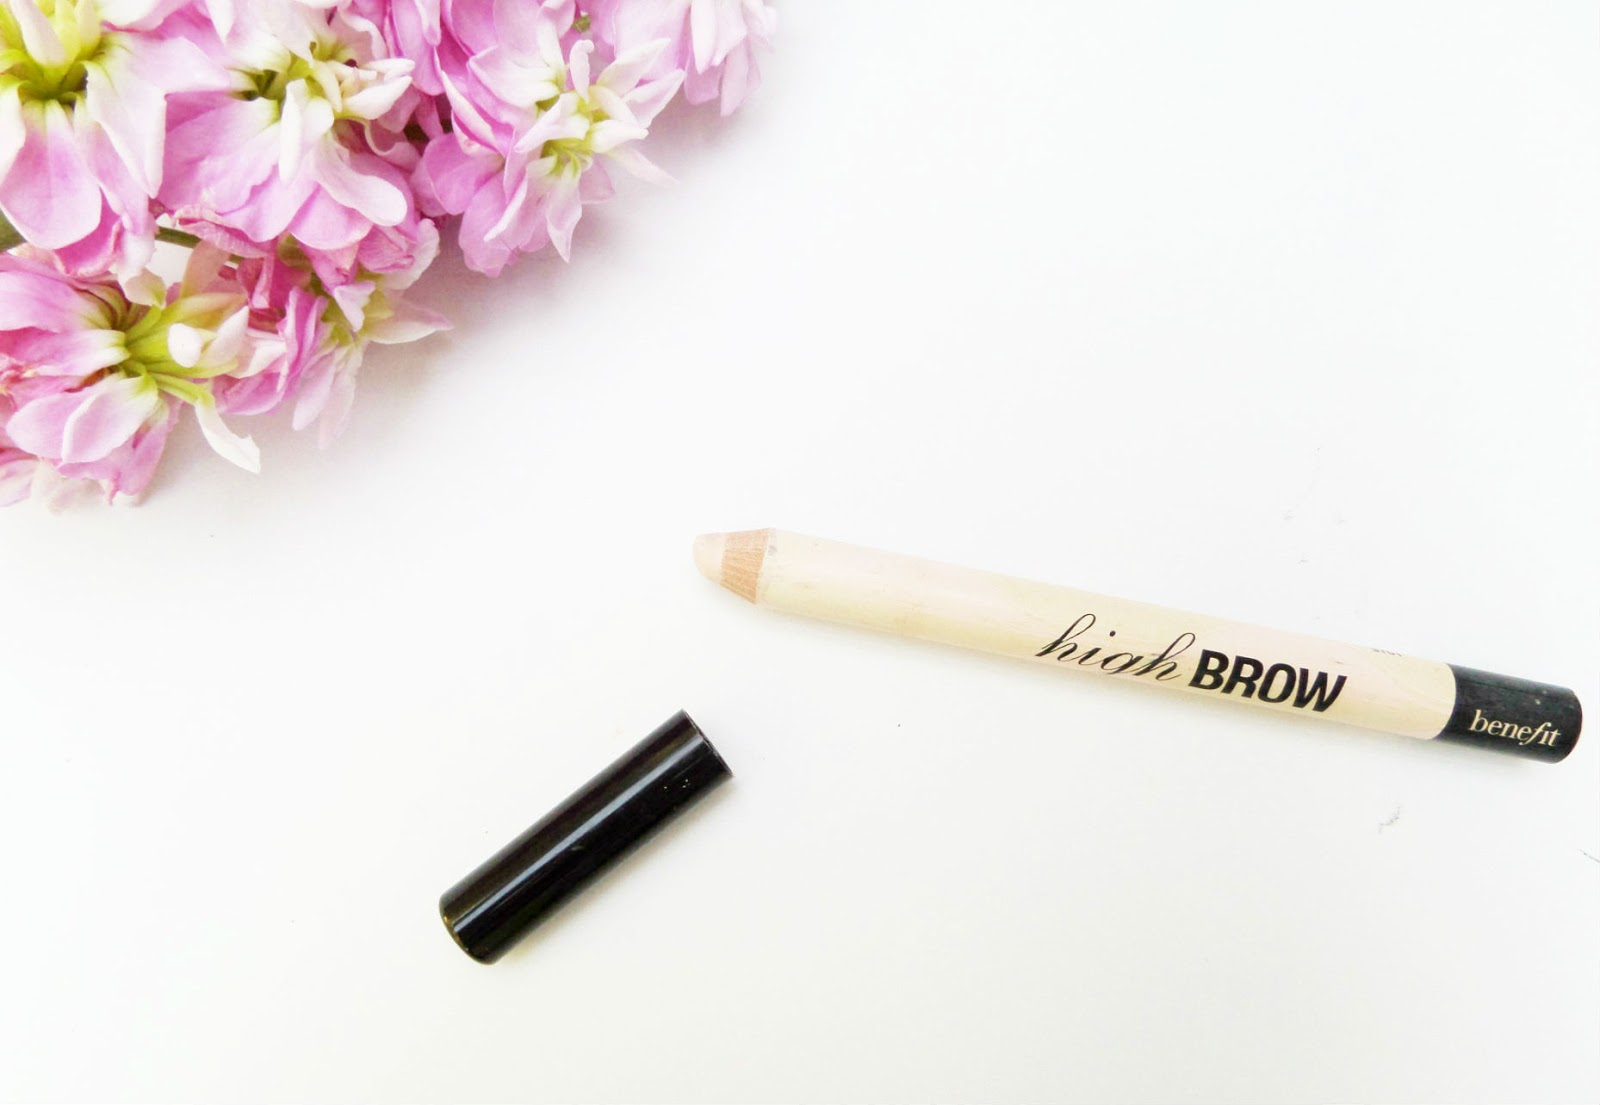 Benefit Cosmetics High Brow Pencil Review